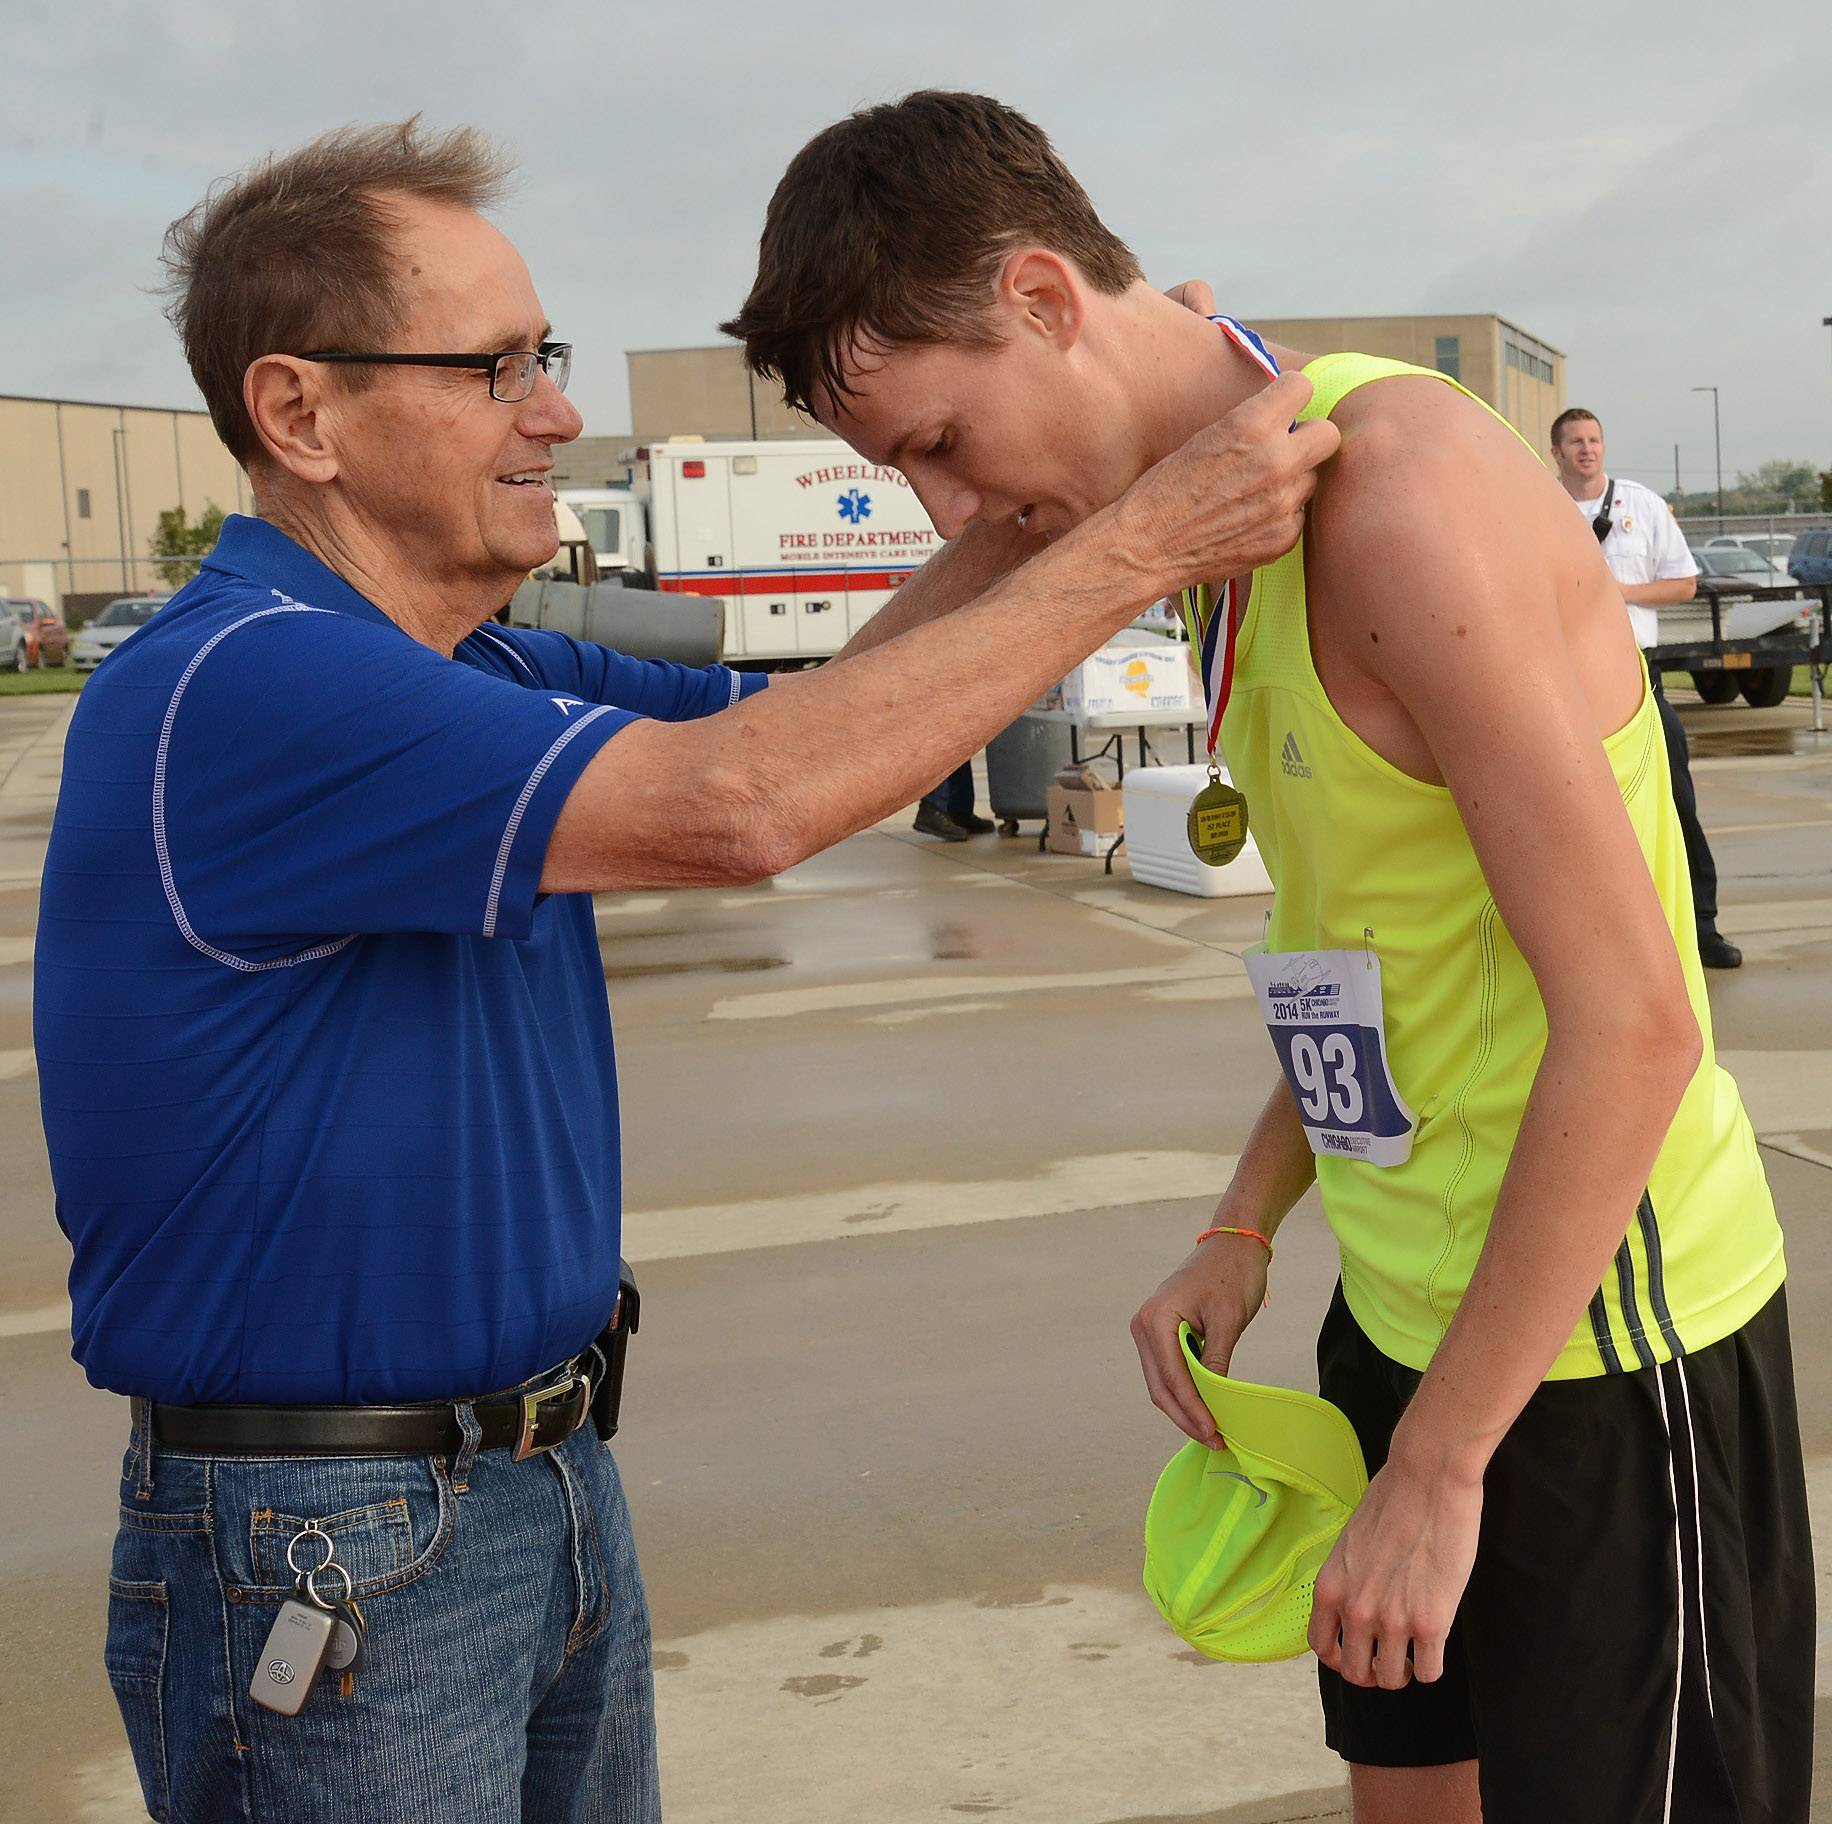 Prospect Heights Mayor Nick Helmer places a medal around the neck of Ryan Kearns of Prospect Heights for the fastest time of 17:28 in the inaugural Run the Runway 5K Run and 1 Mile Walk at Chicago Executive Airport in Wheeling.